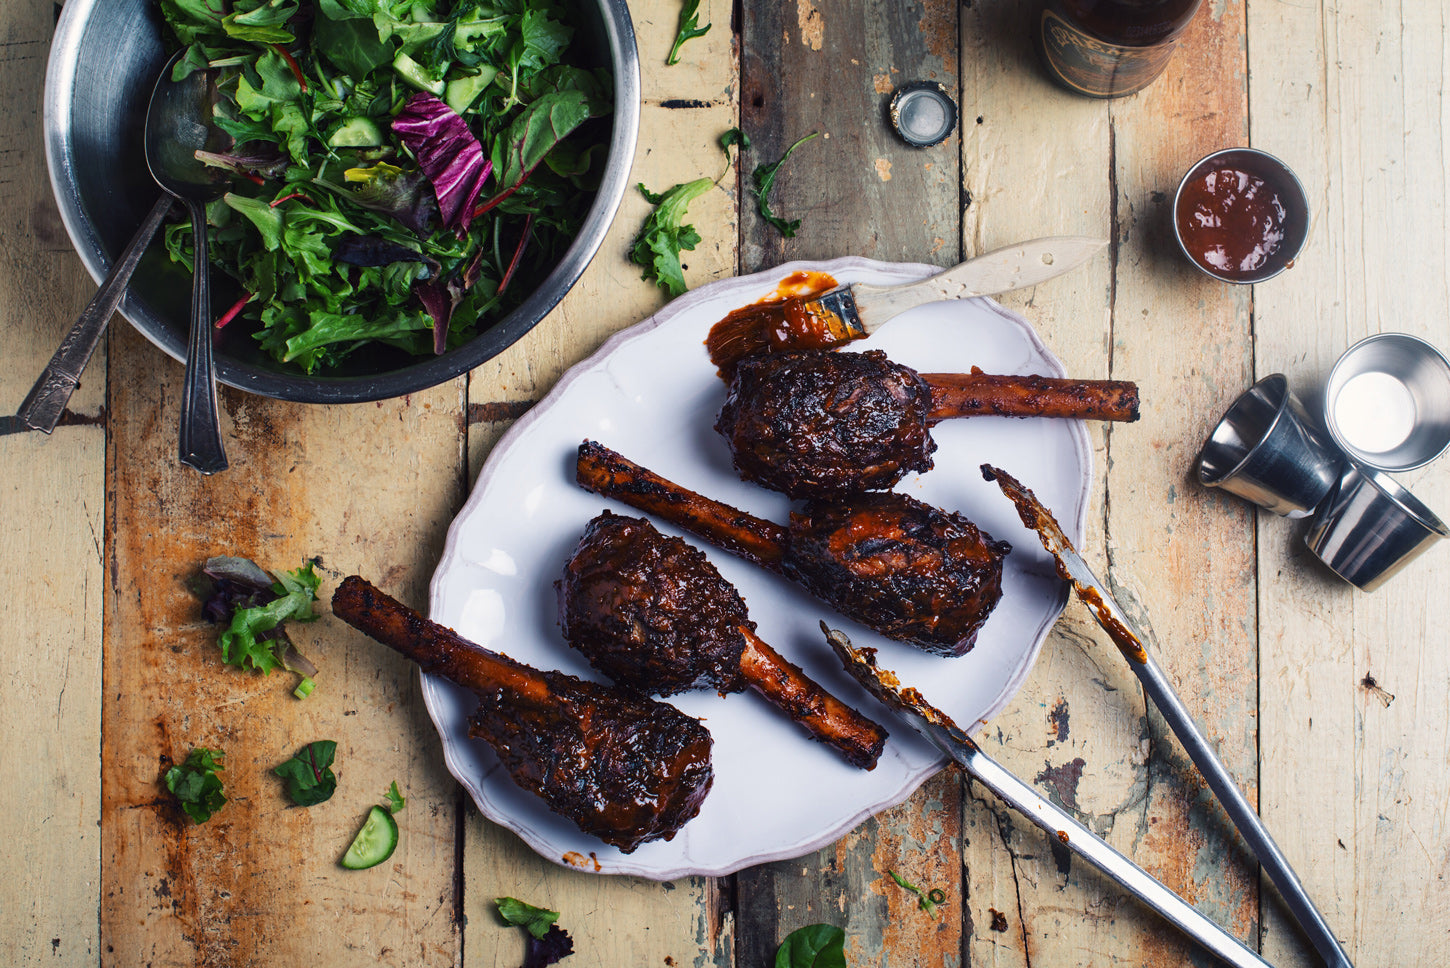 Braised and Barbecued Lamb Shanks